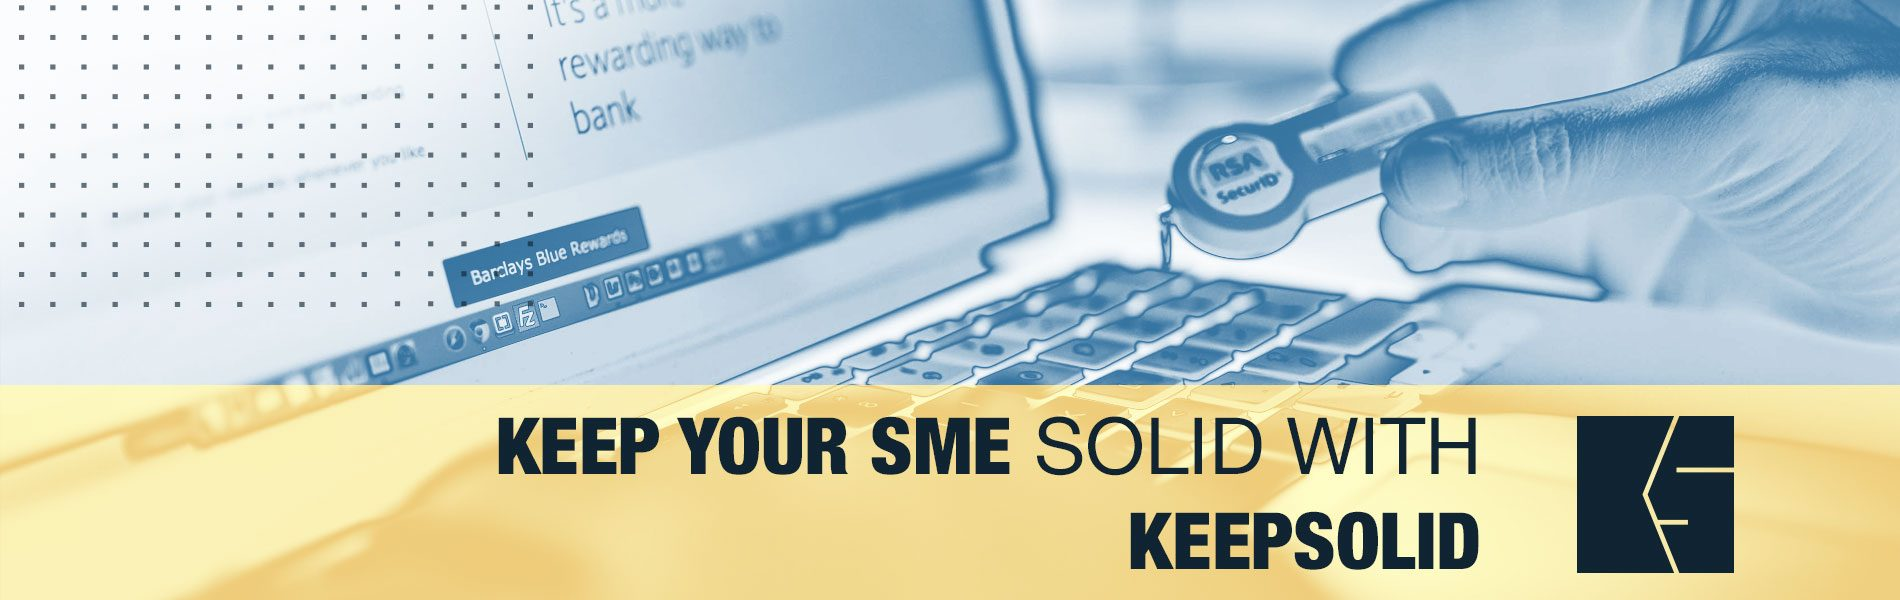 How to Secure Your SME From Cyber Threats in 4 Easy Steps